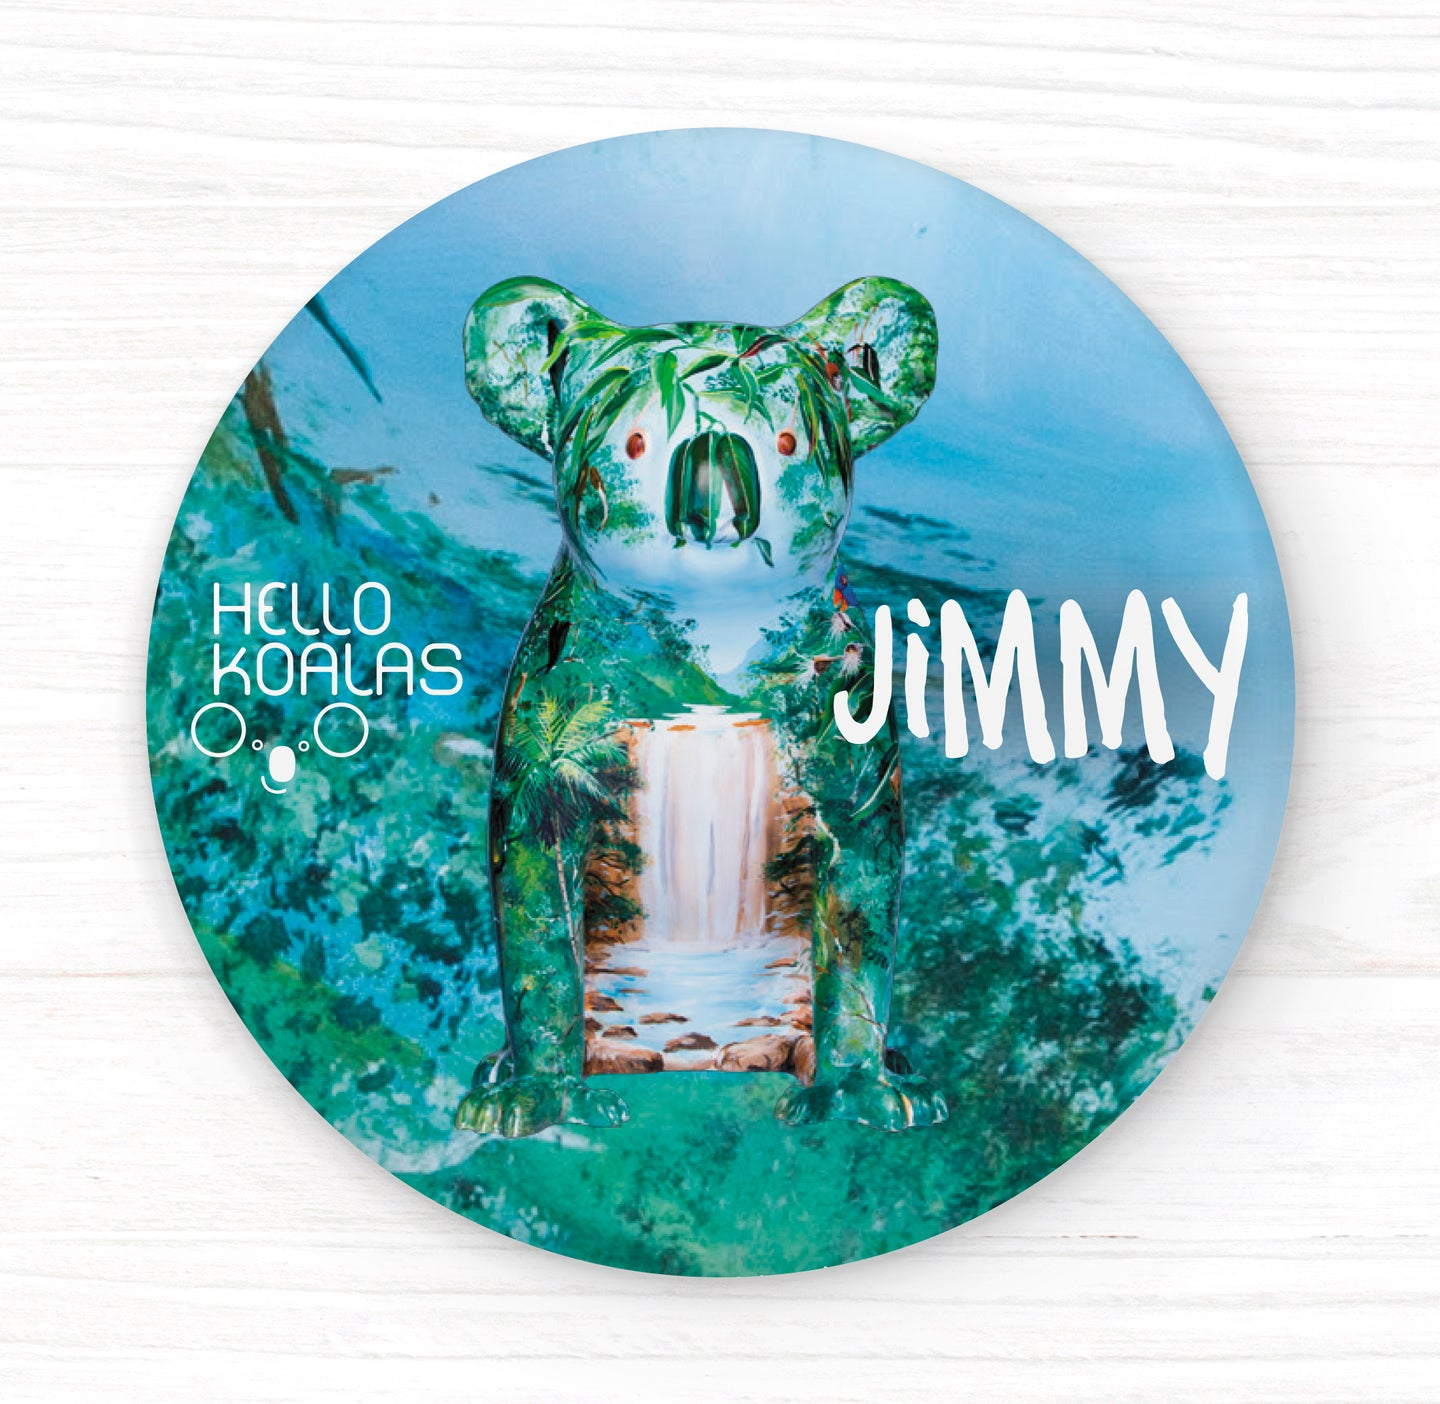 Hello Koalas Jimmy Magnet